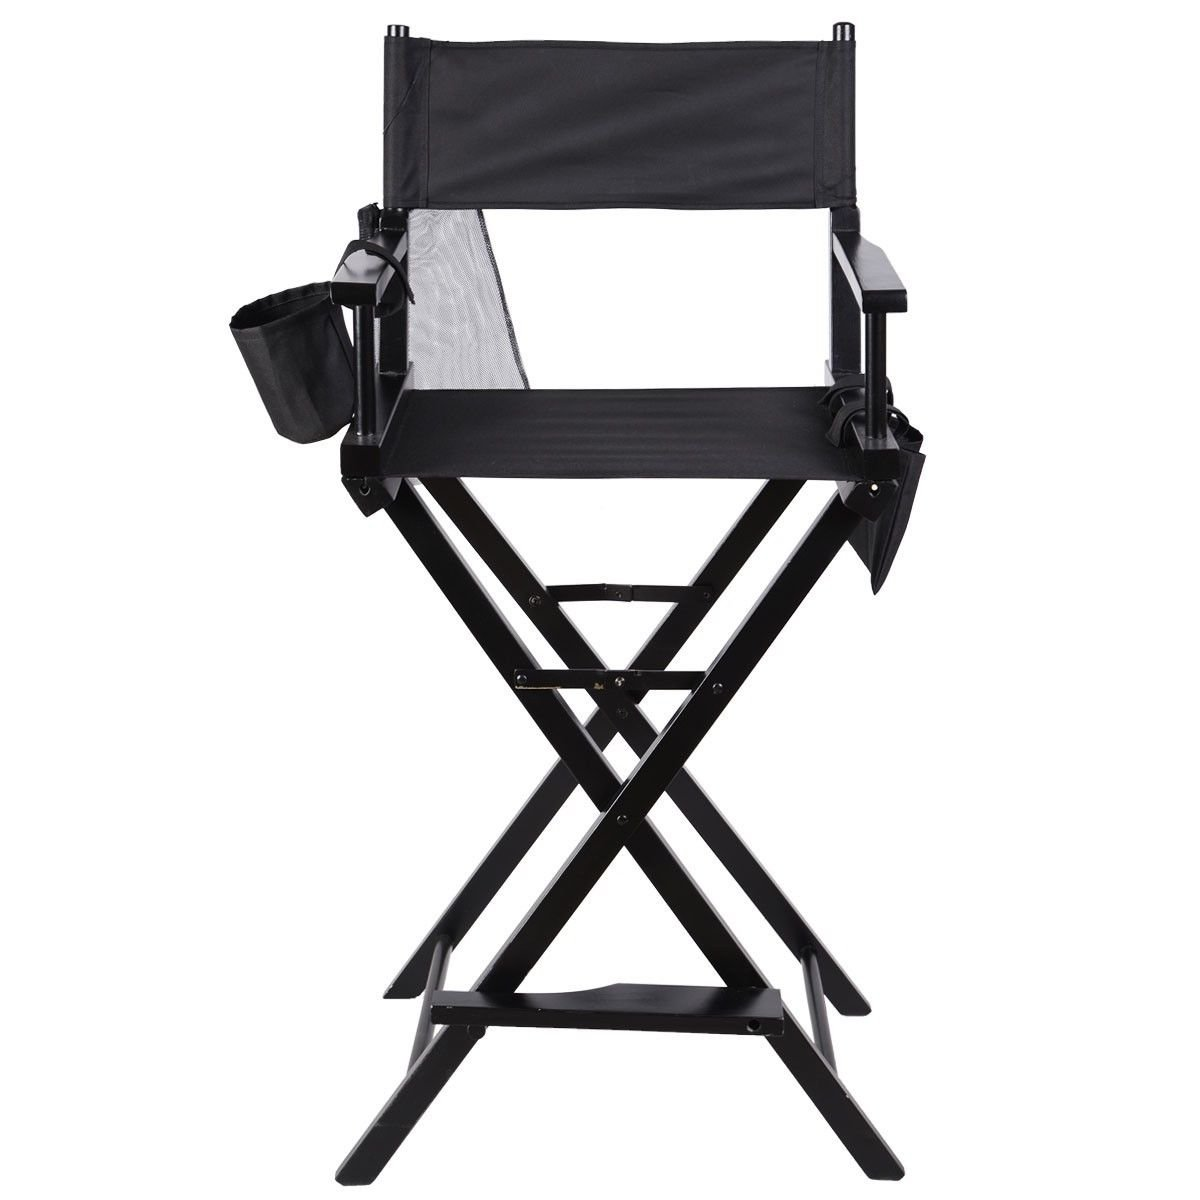 Professional Makeup Artist Directors Chair Wood Light Weight Foldable Black